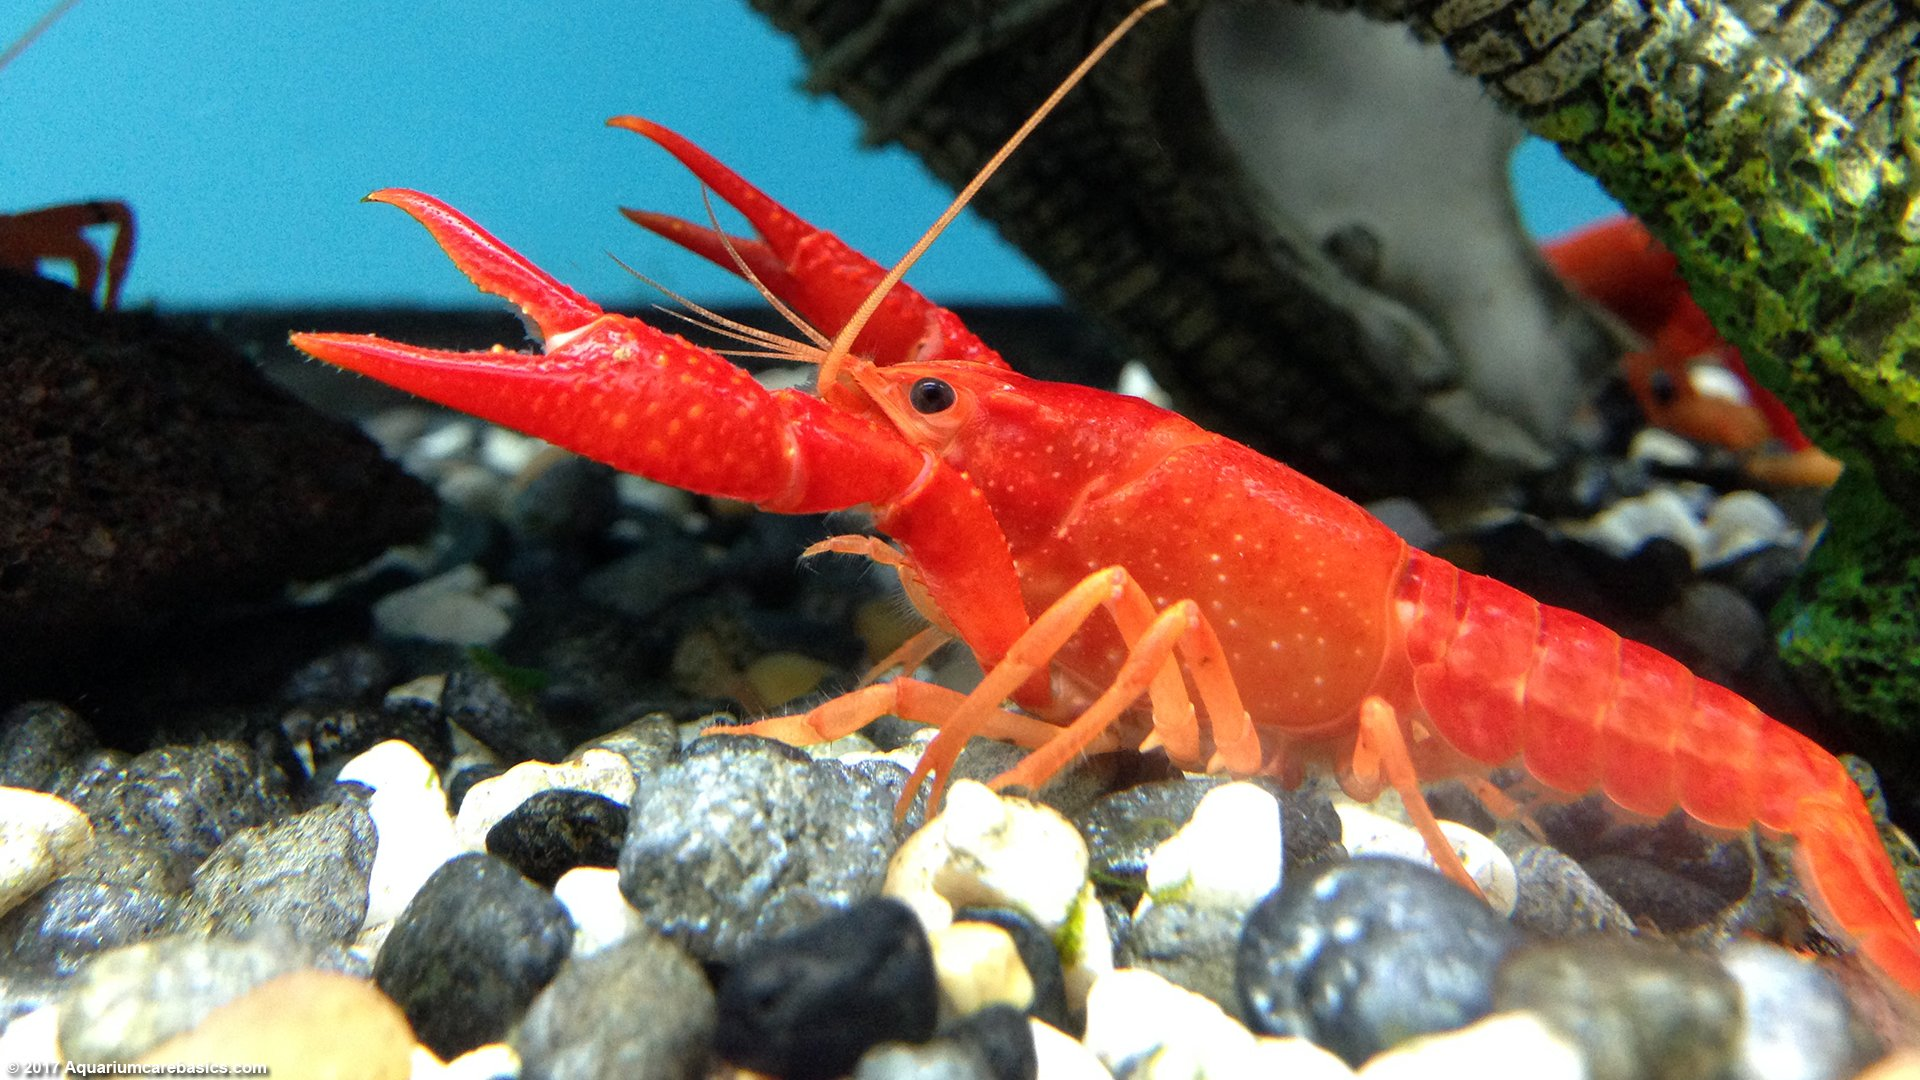 Aquarium Crayfish: Think About A Species Tank With Many Places to Hide